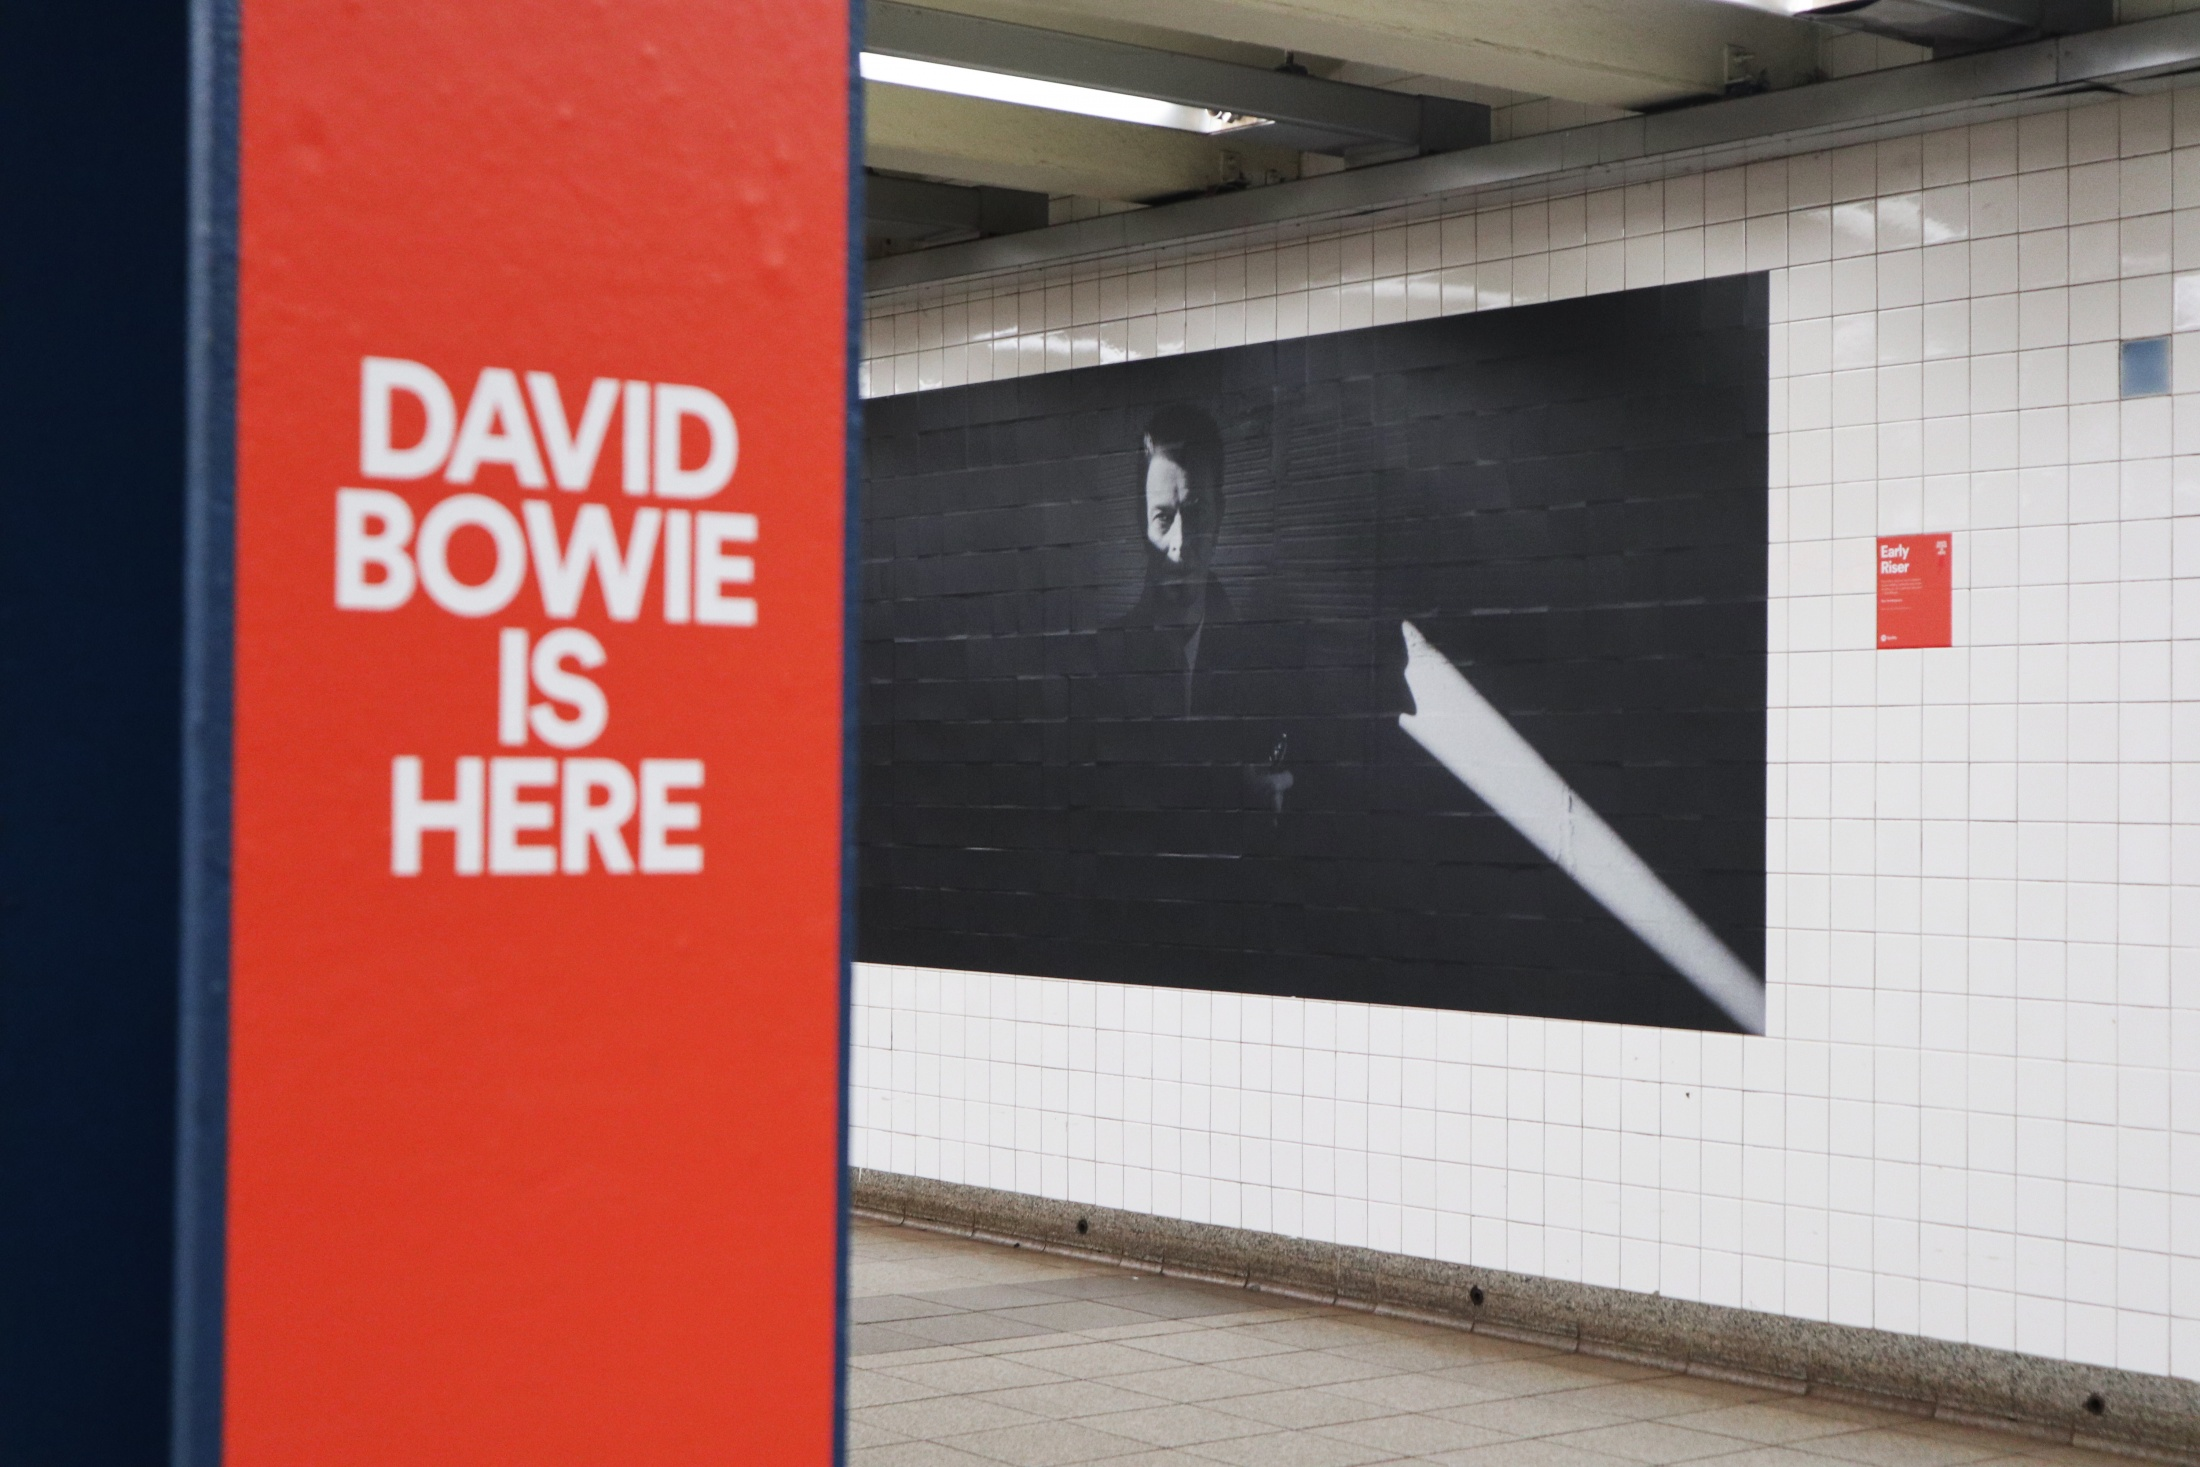 Image Media for David Bowie Is Here